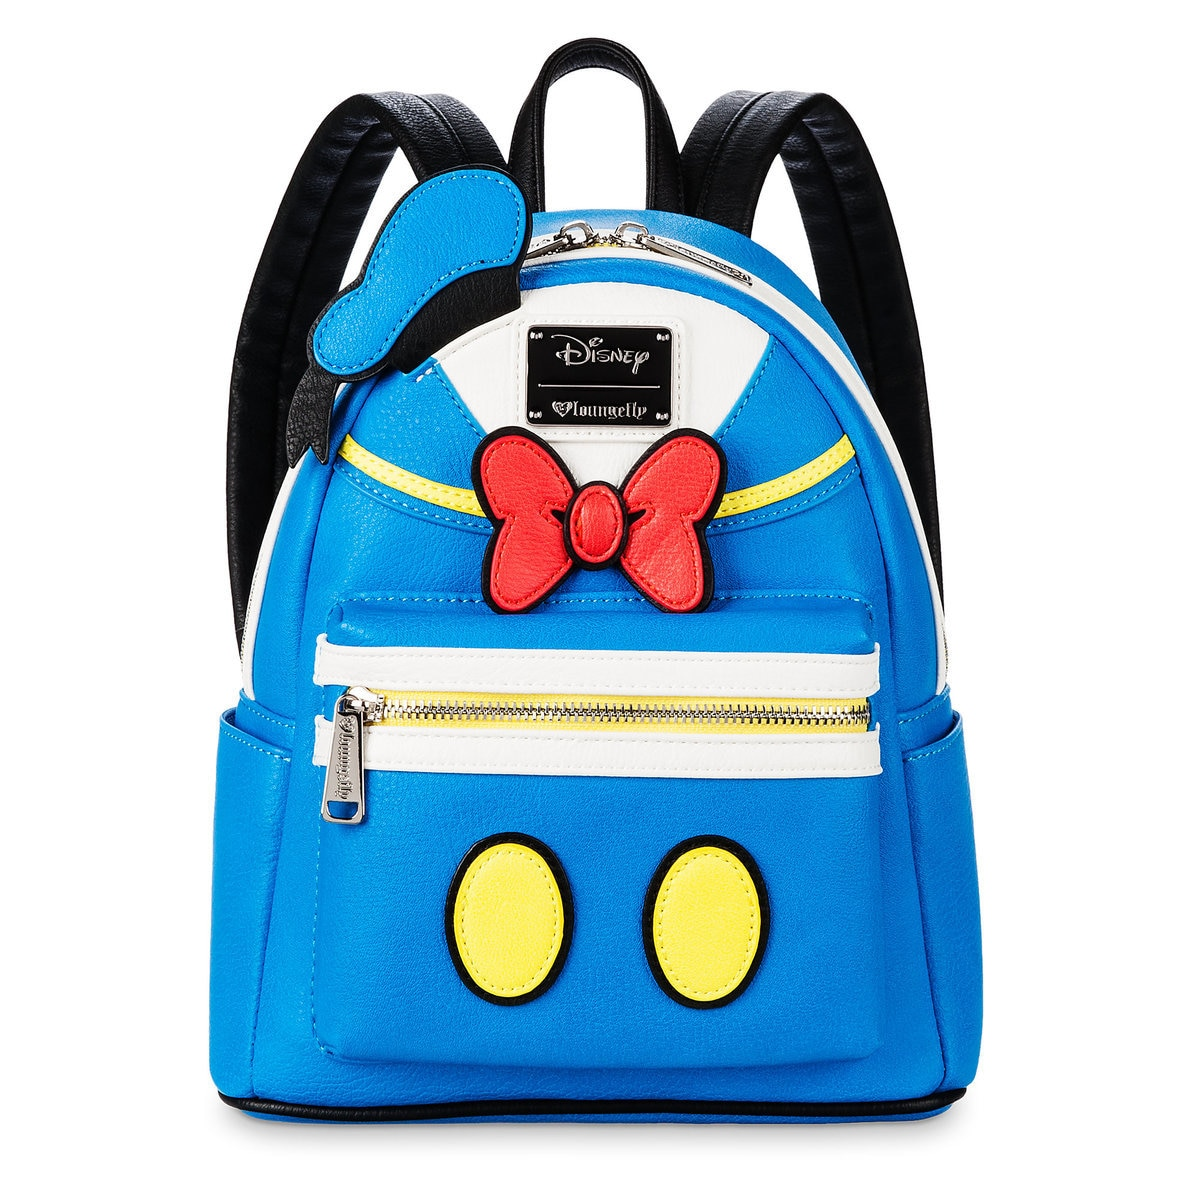 8c8e6bf381 Product Image of Donald Duck Mini Backpack by Loungefly   1